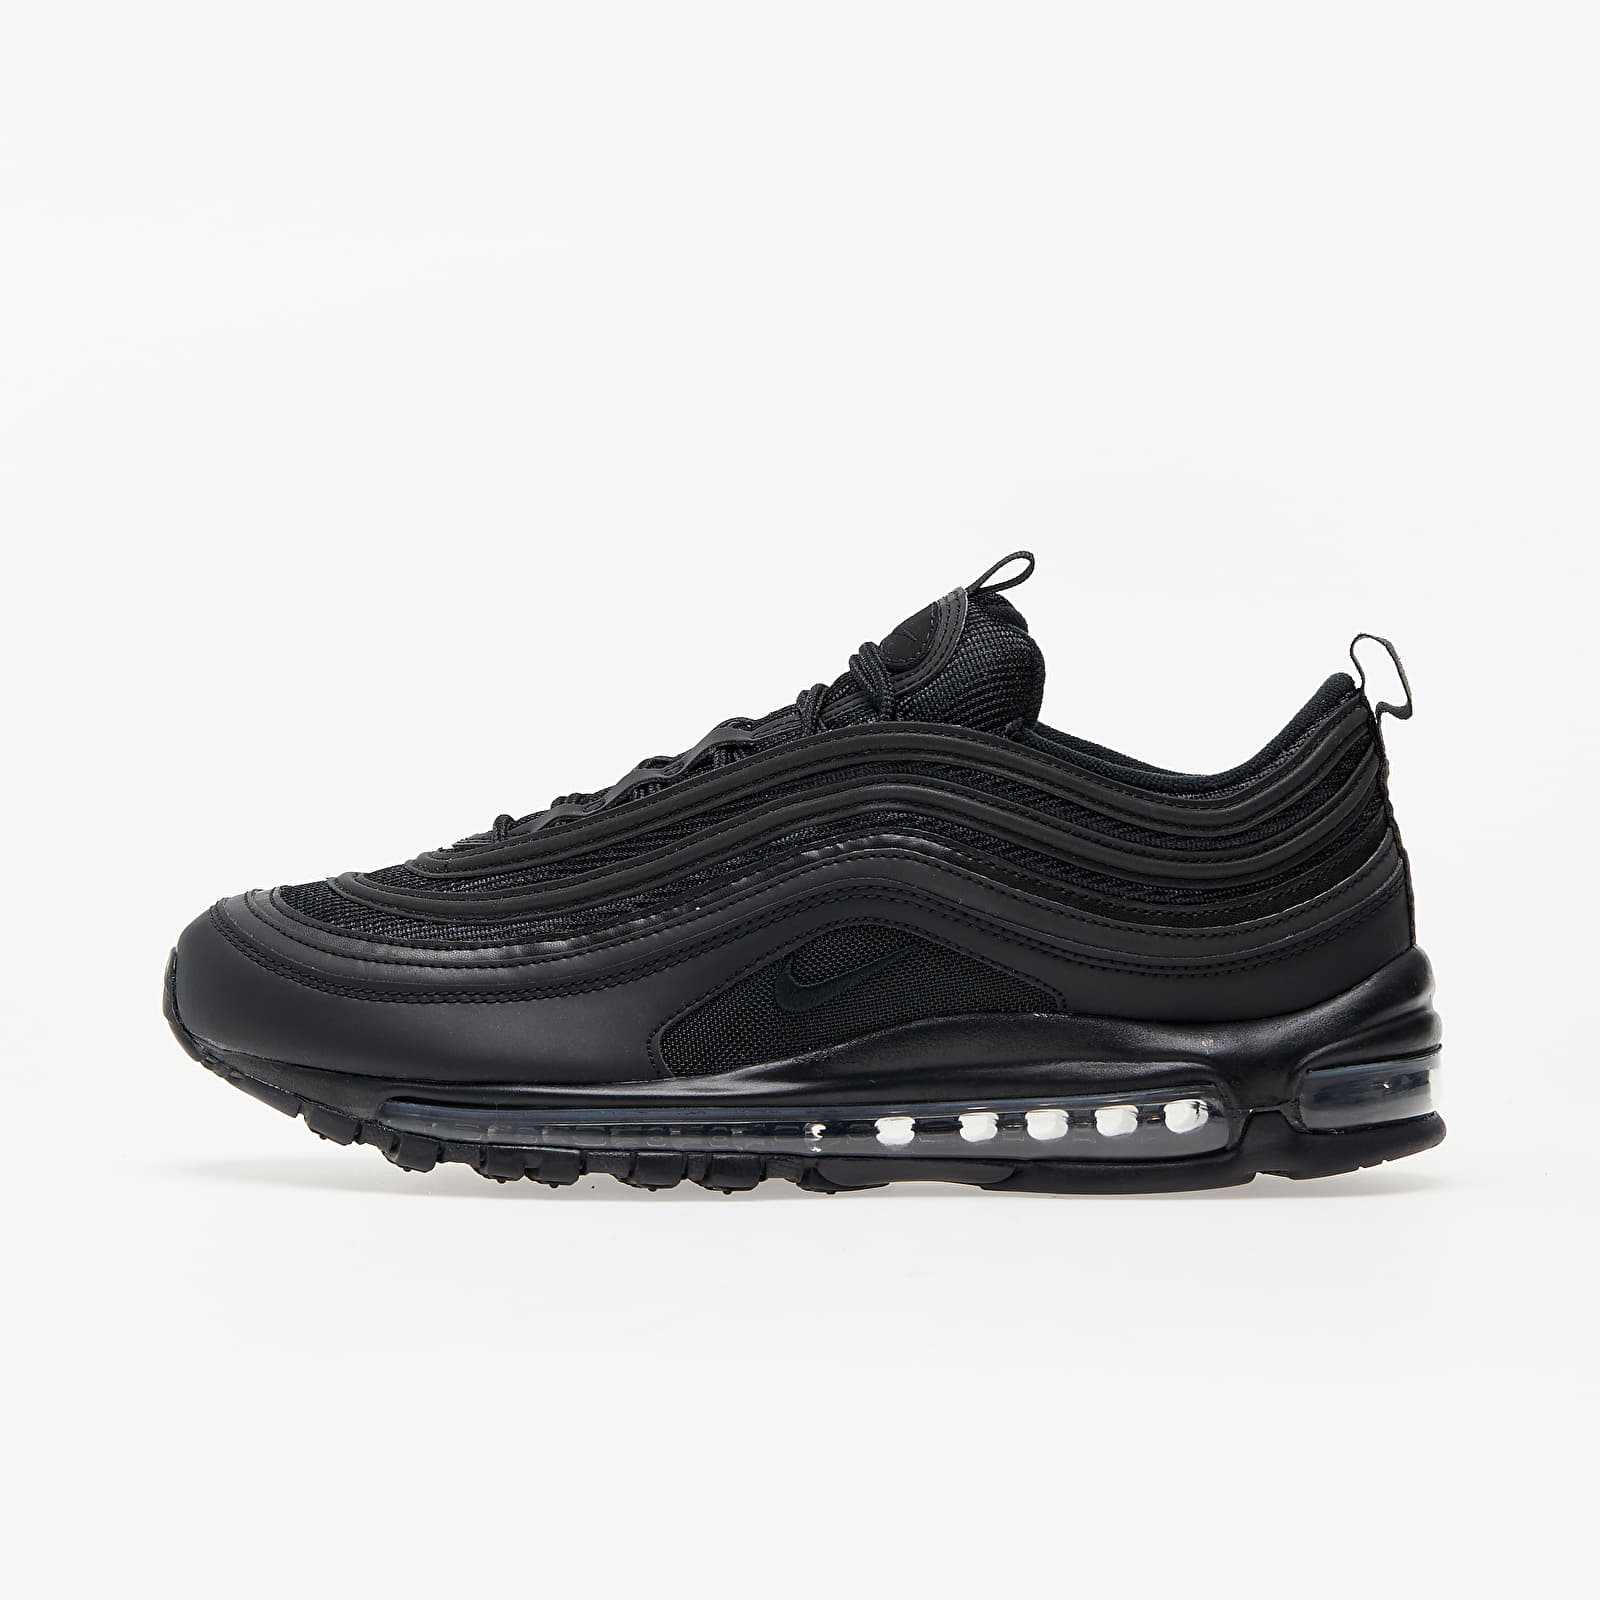 Nike Air Max 97 Black/ Black-White EUR 42